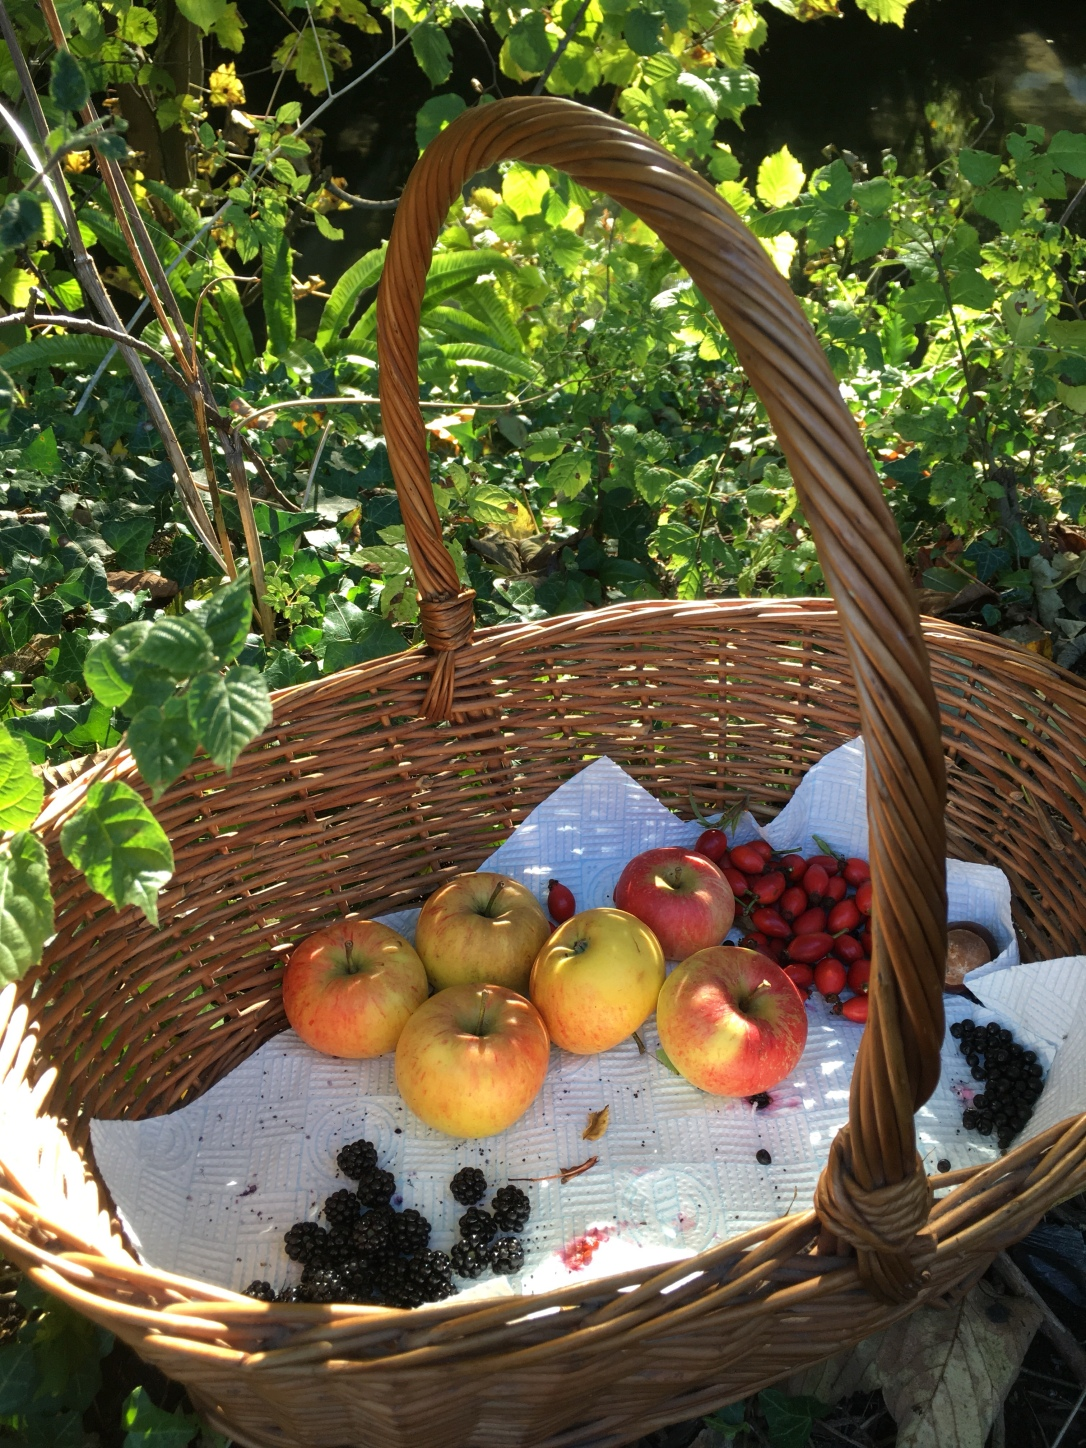 Foraging apples, blackberries, elderberries, rosehips